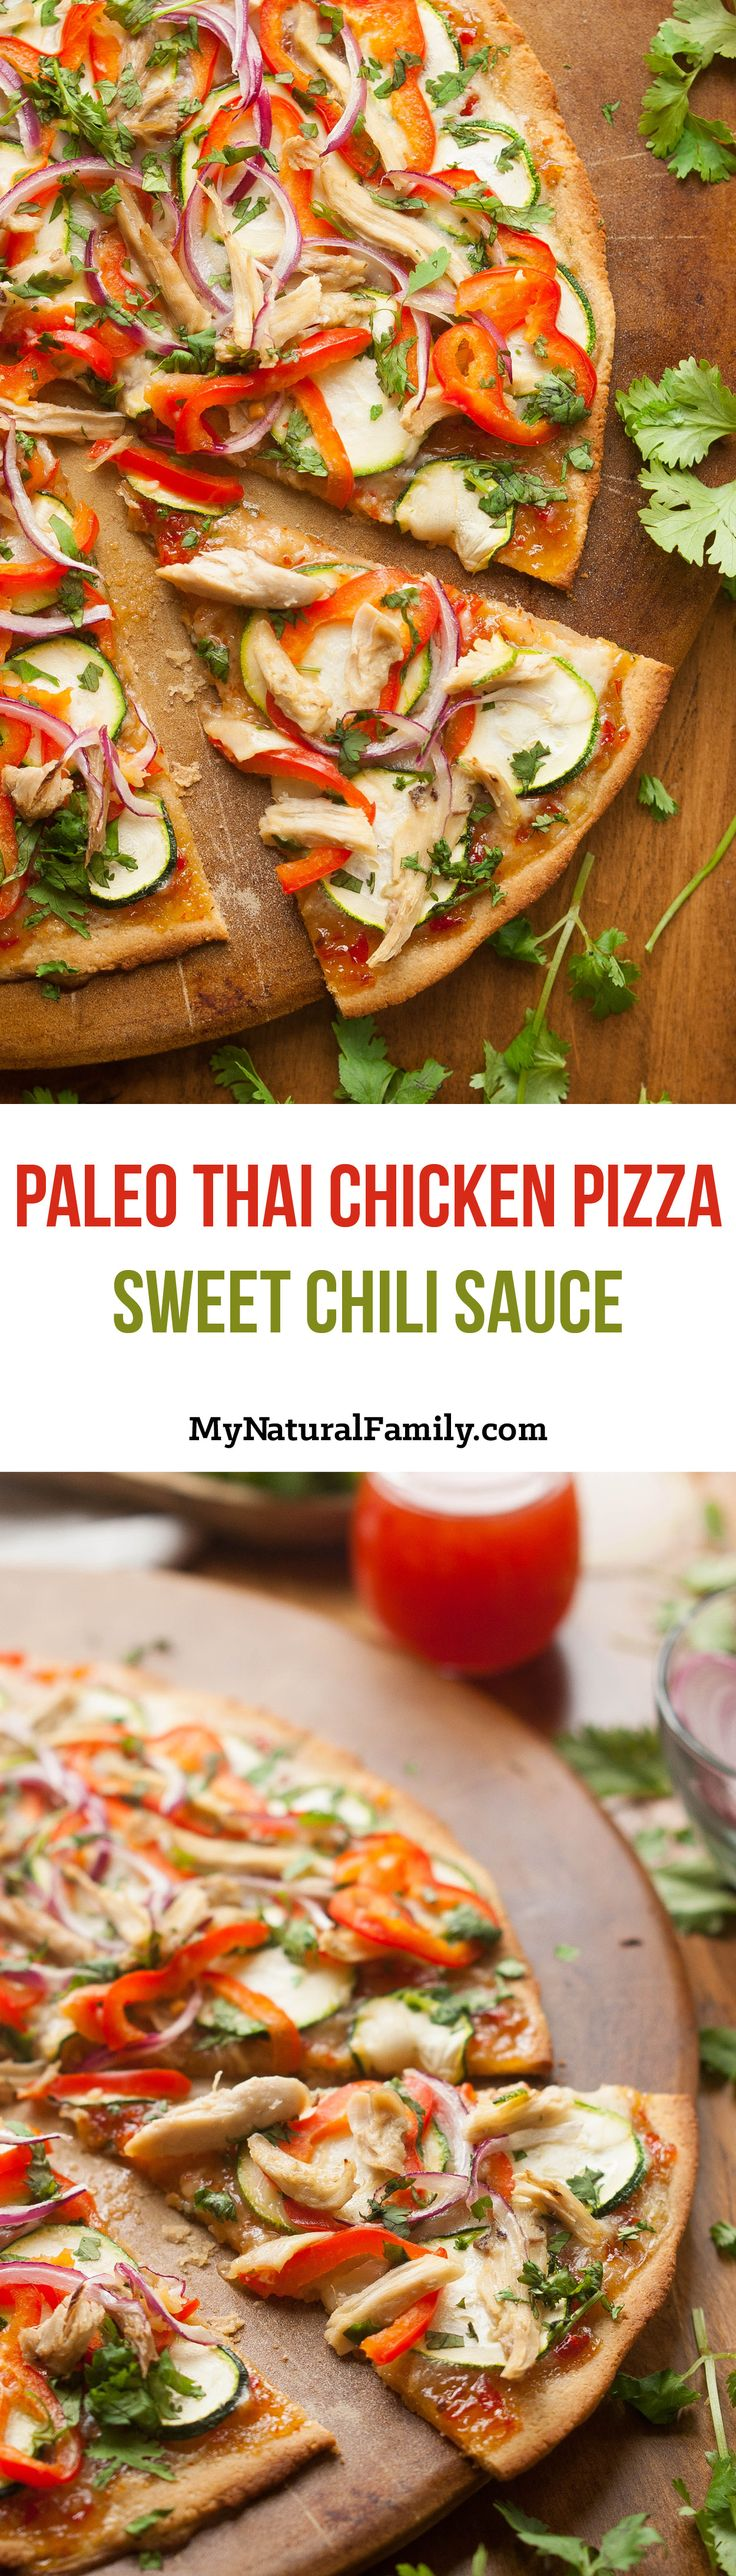 Paleo Thai Chicken Pizza Recipe with Paleo Sweet Chili Sauce. This pizza has a bold flavor and features fresh, crisp vegetables and bright colors.